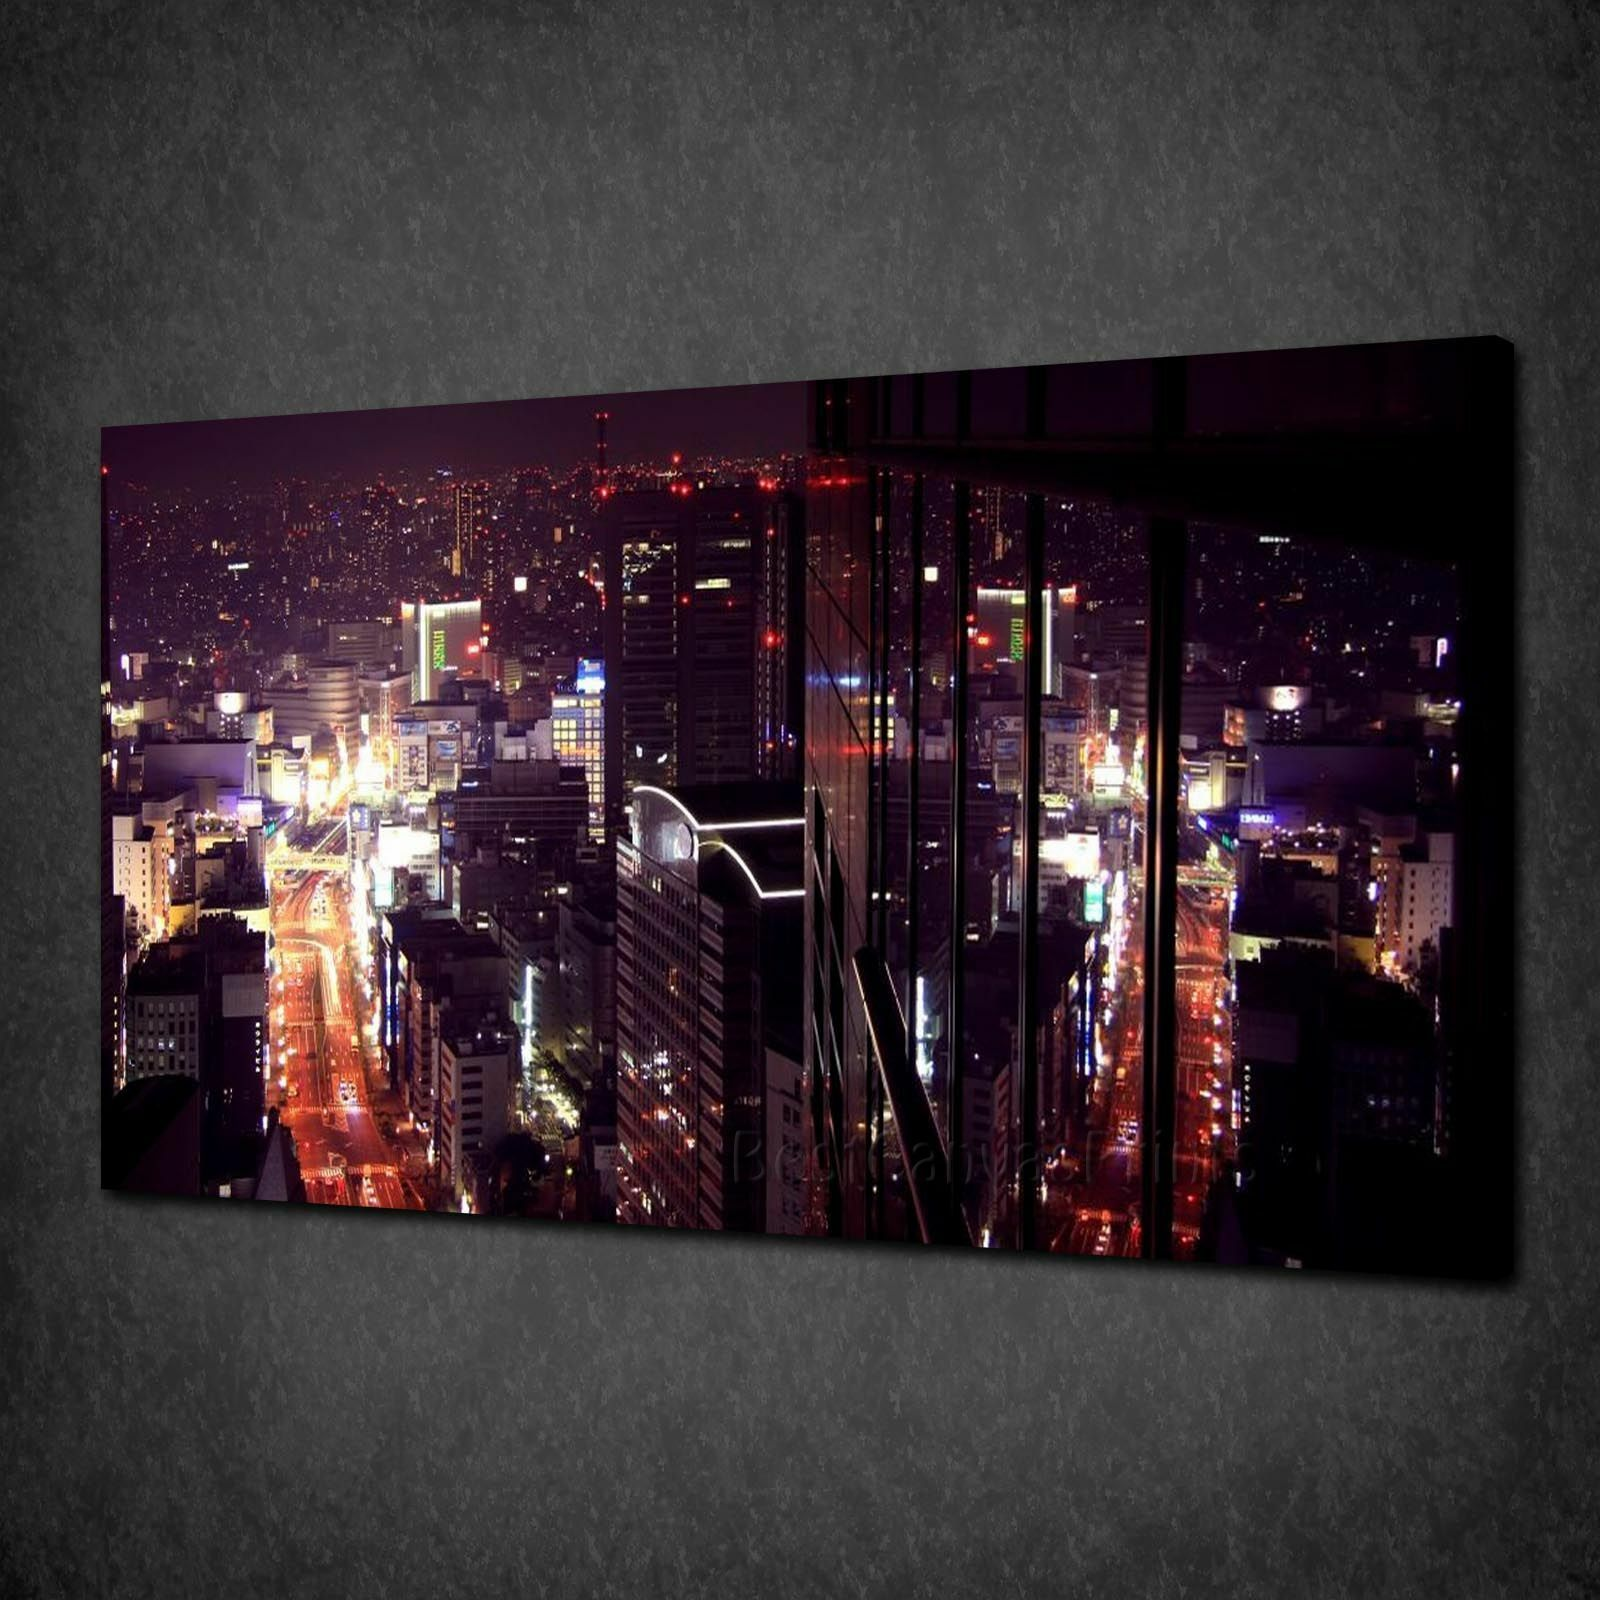 THE lilaLICOUS CITY SKYLINE BOX CANVAS PRINT WALL ART PICTURE